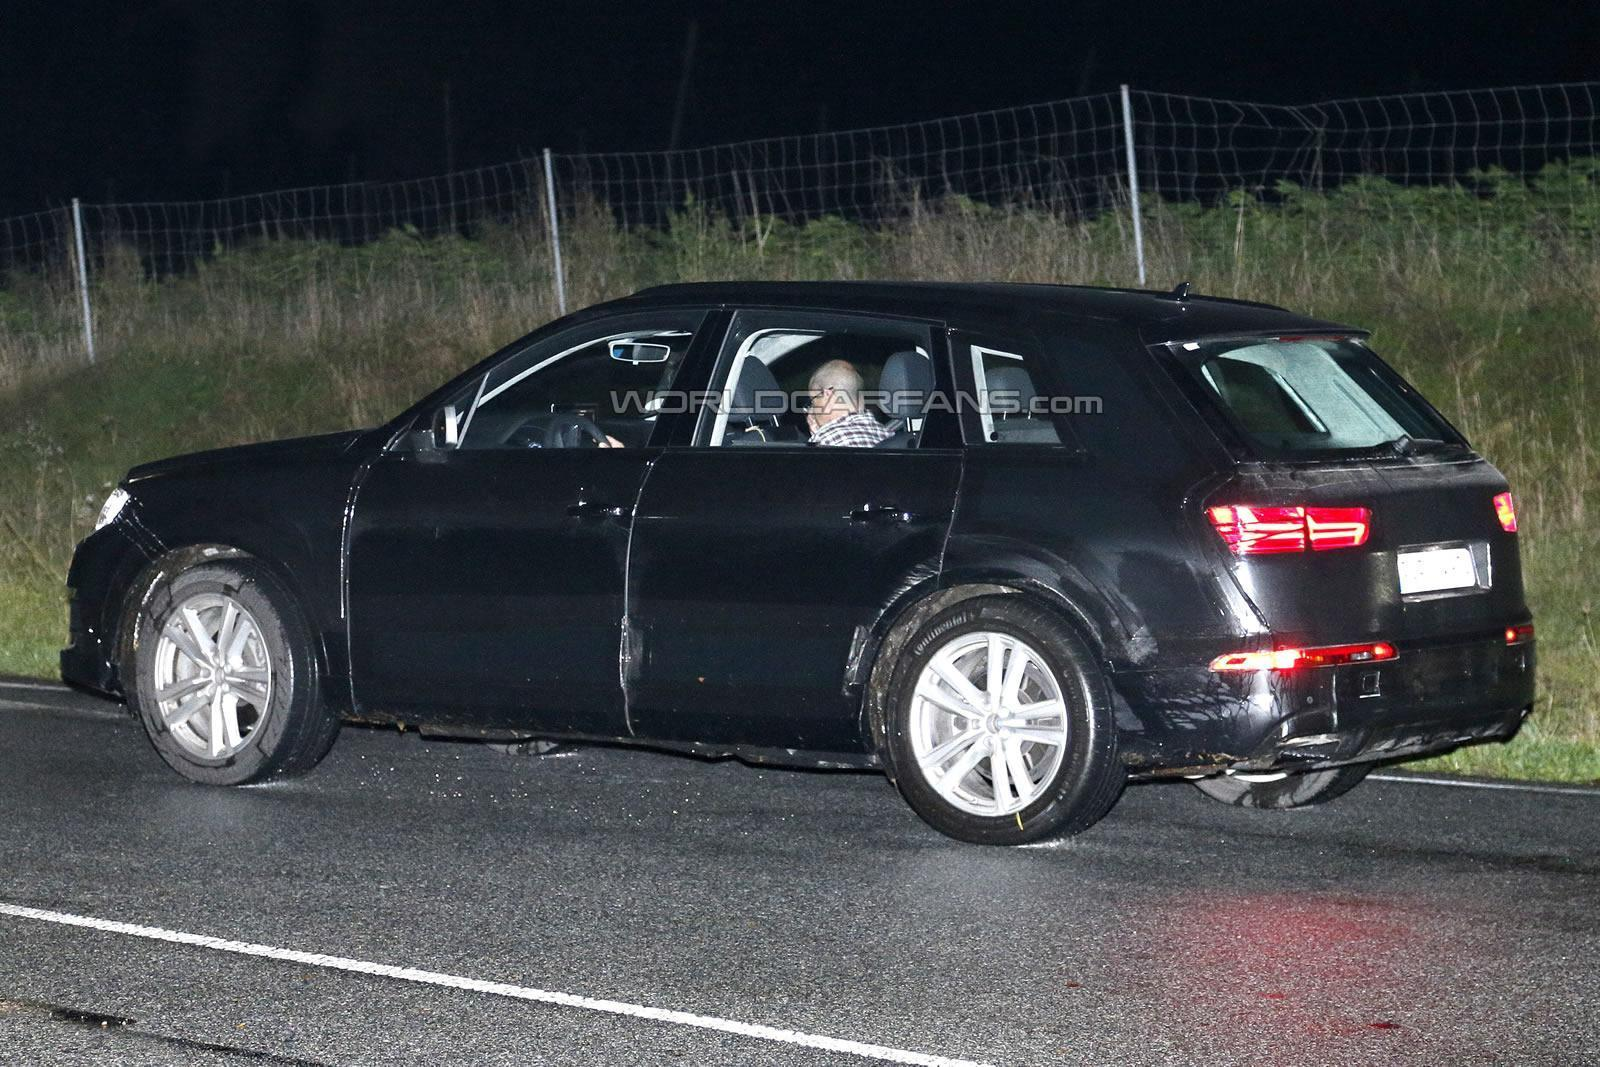 2016 Audi Q7 spotted with matrix LED